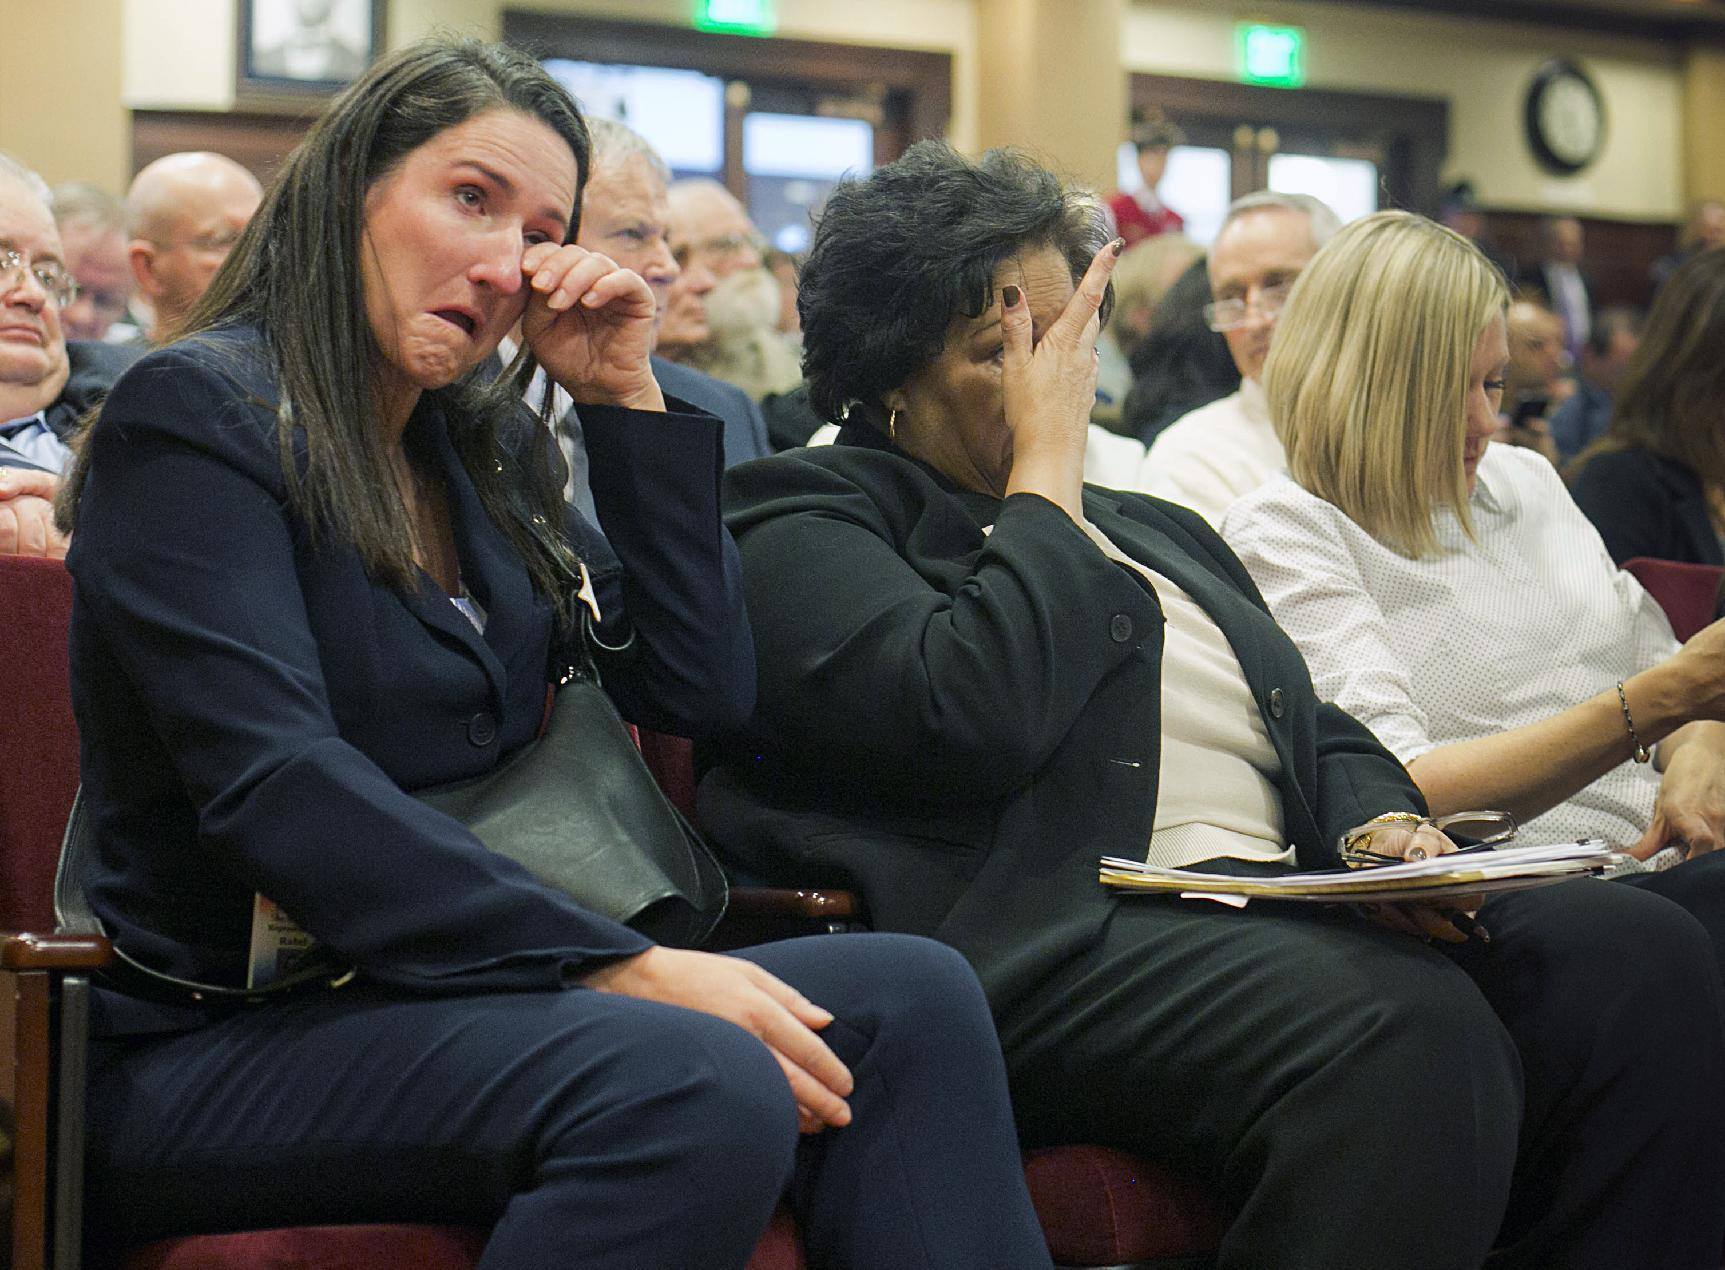 Push for gay protections in Idaho stirs emotional debate